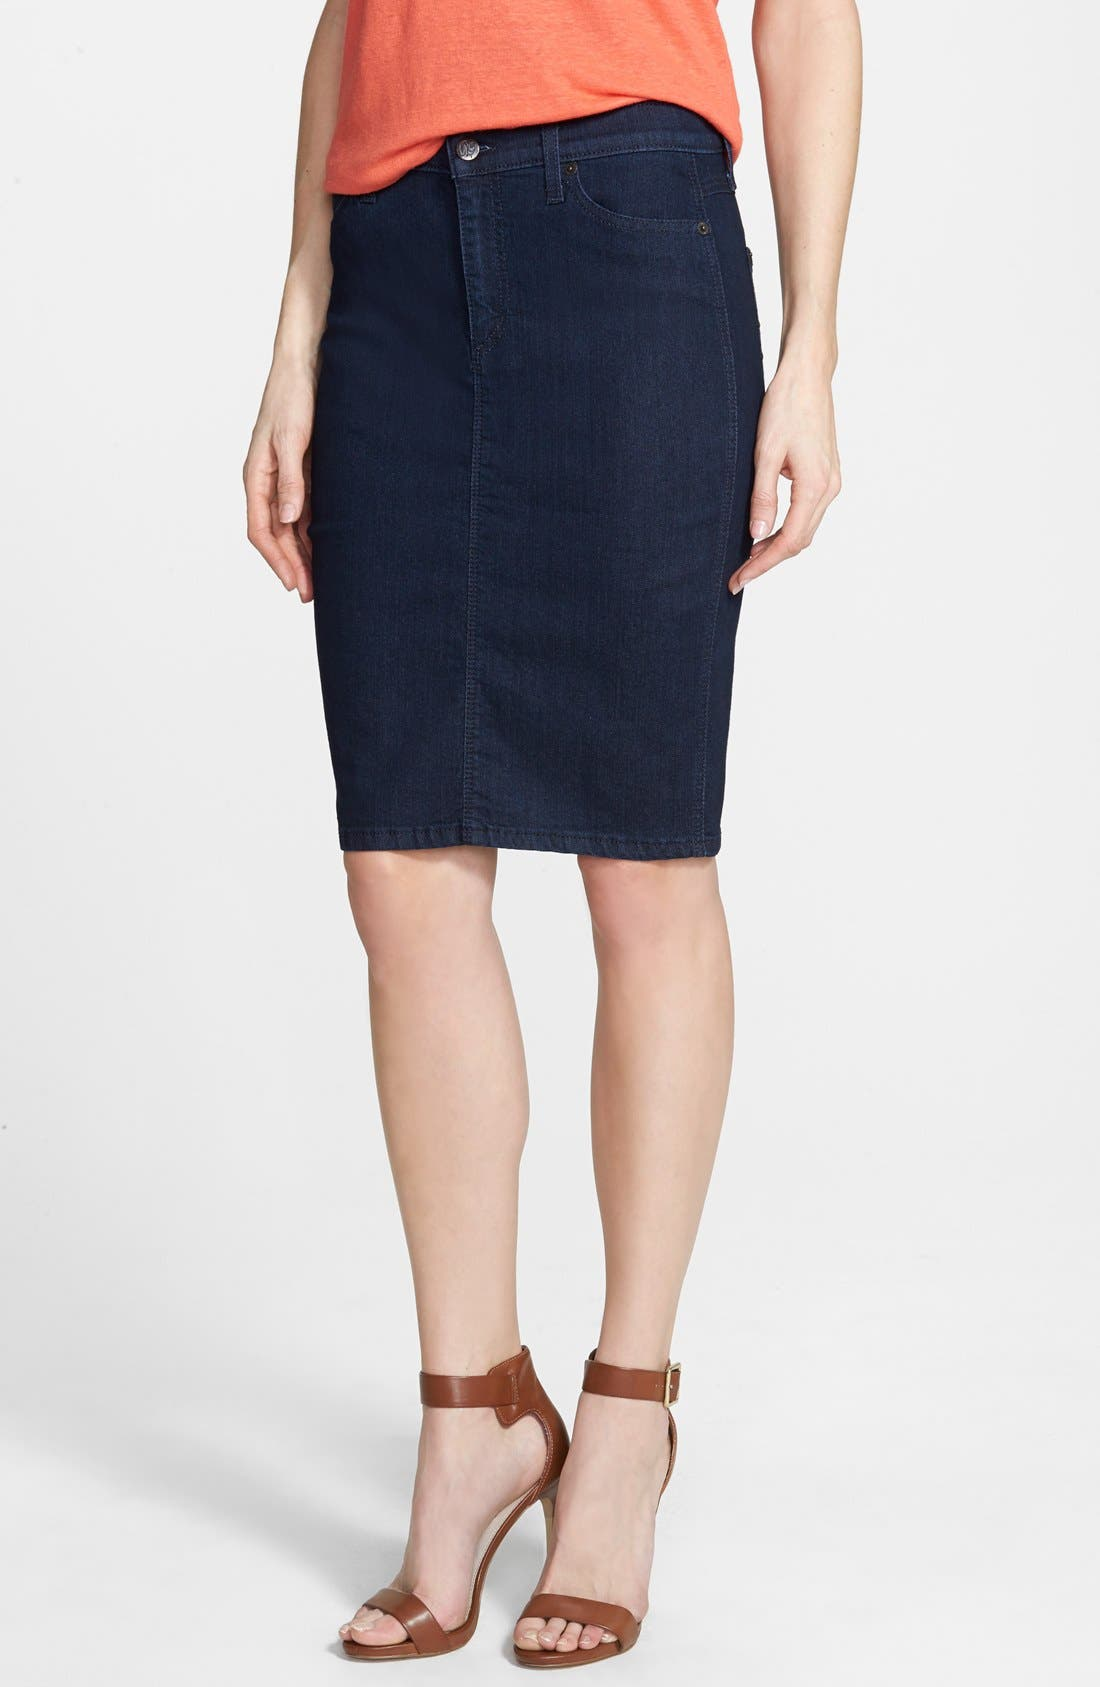 Main Image - Yoga Jeans by Second Denim Pencil Skirt